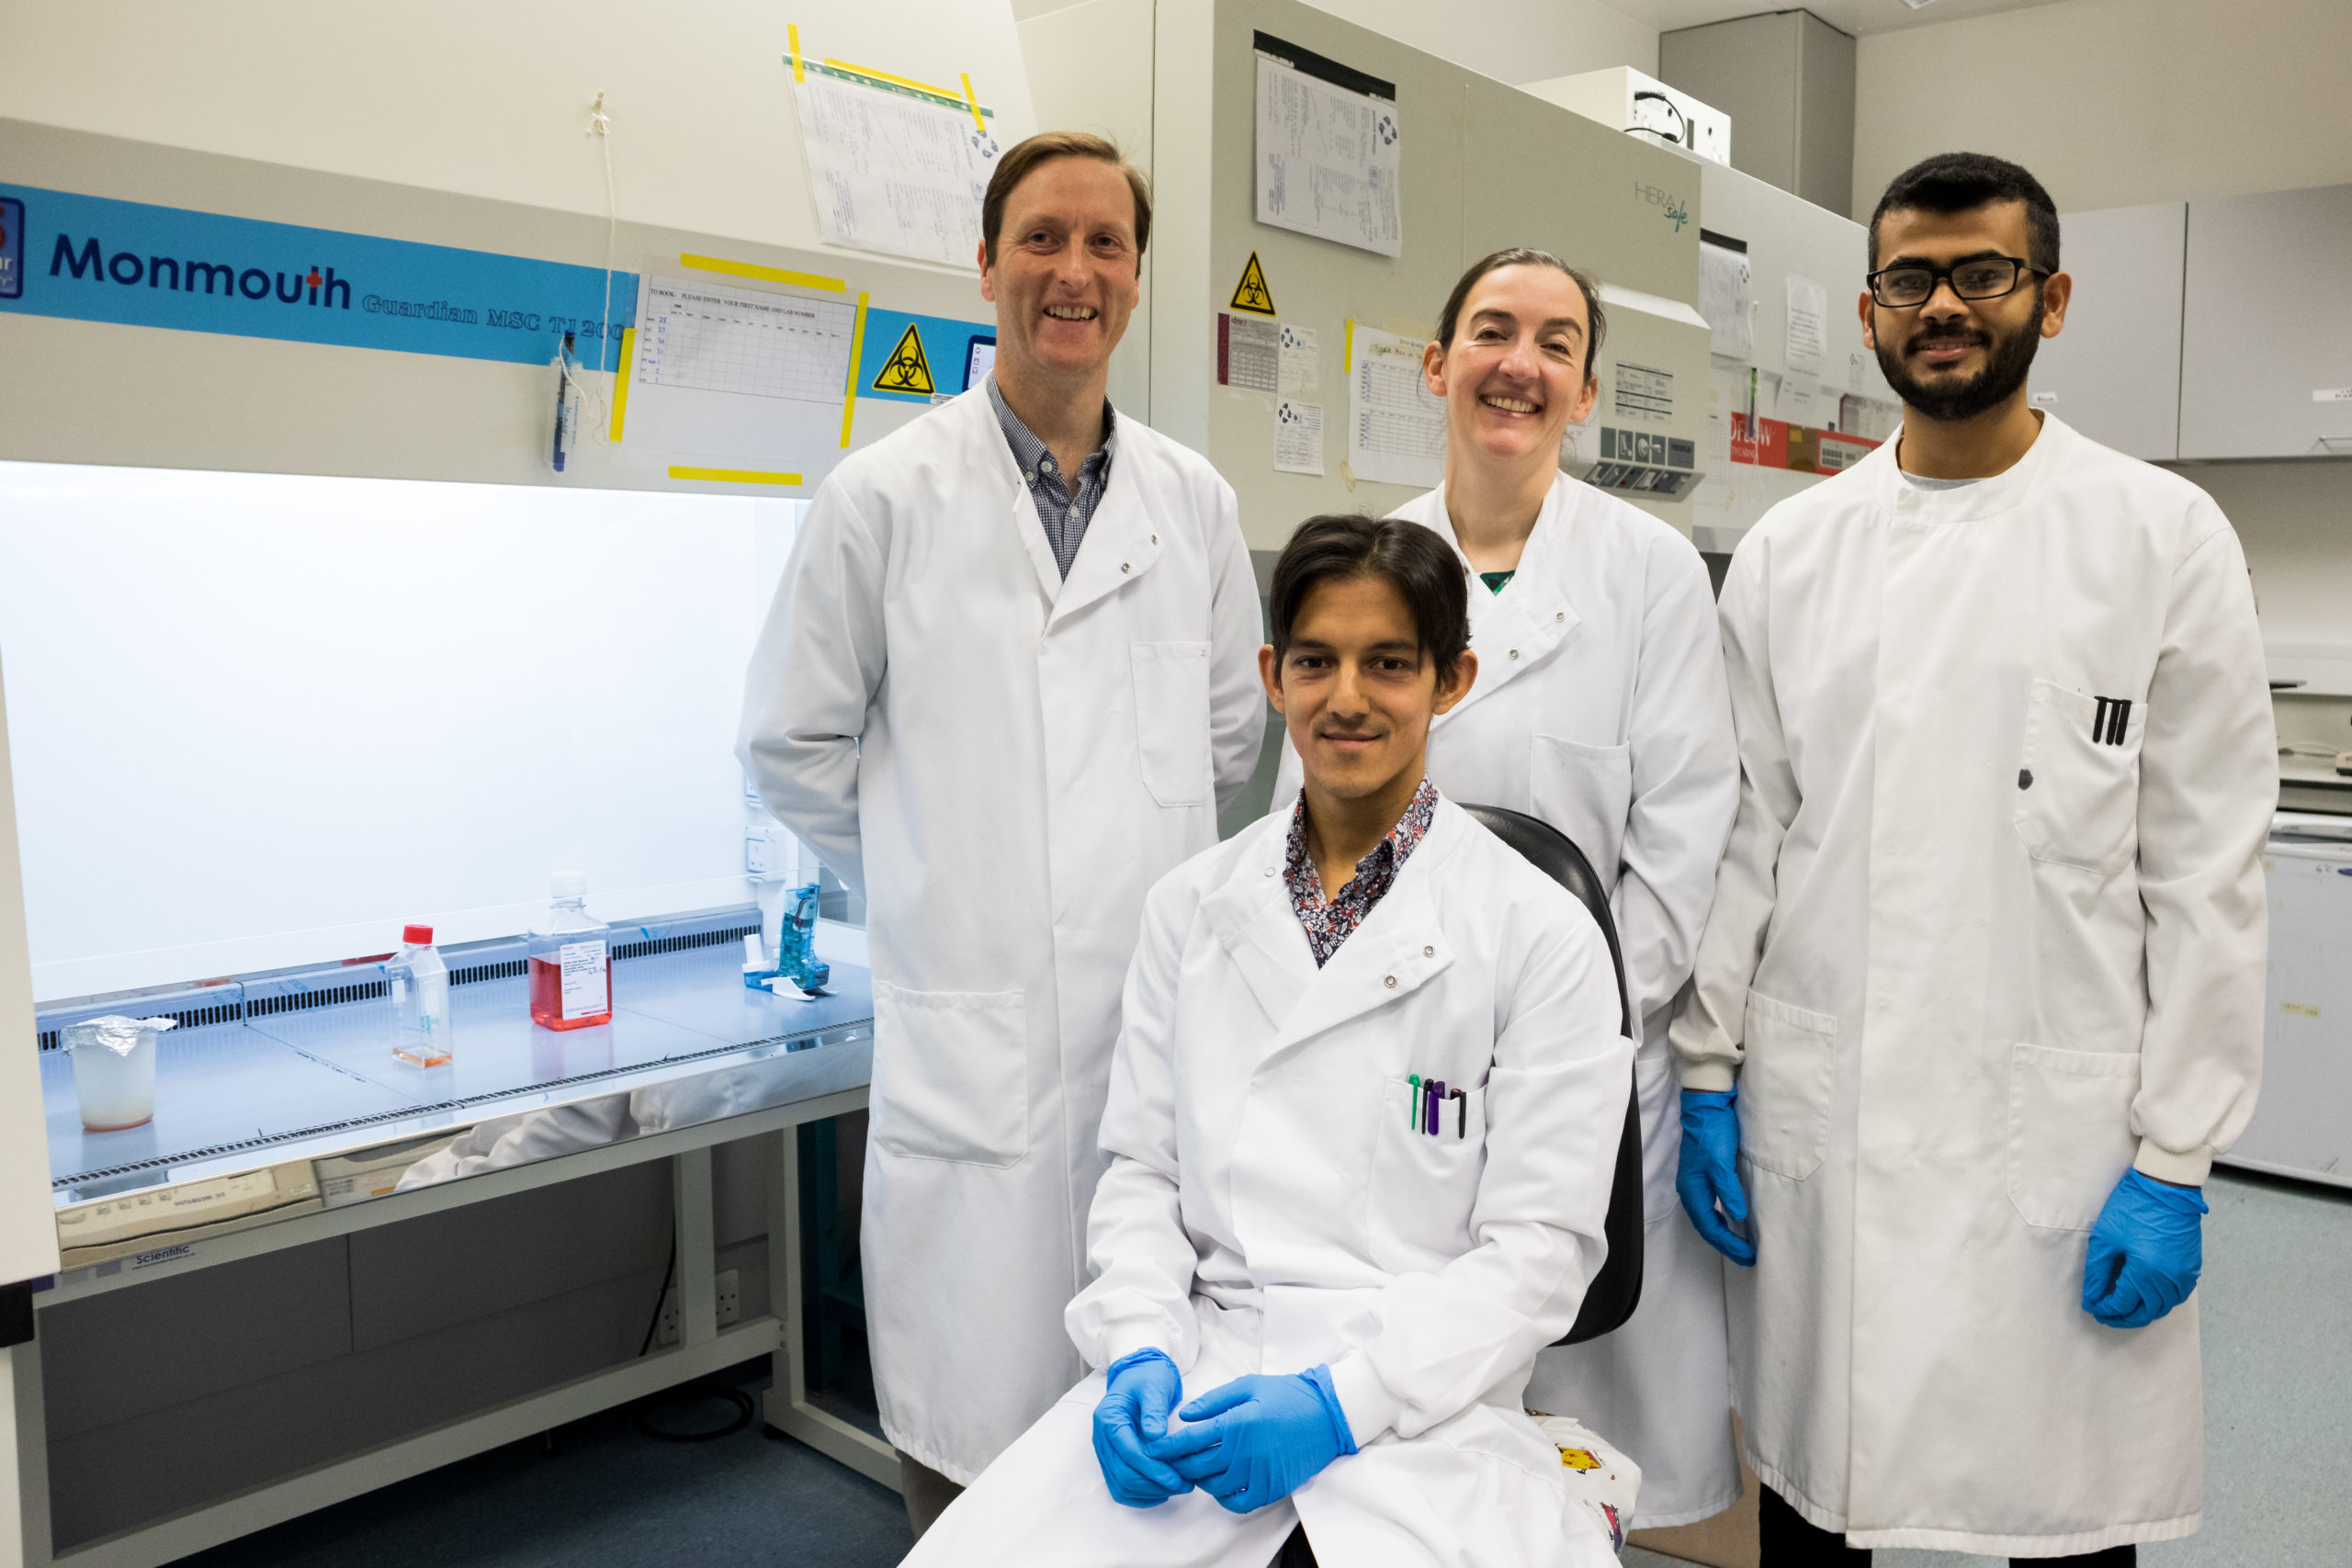 Dr Ian Fleming (back left) with Dr Kirsten Laws (back middle) and PhD students are Andrew Mohan (front) and Bandar Alwadani (back right)